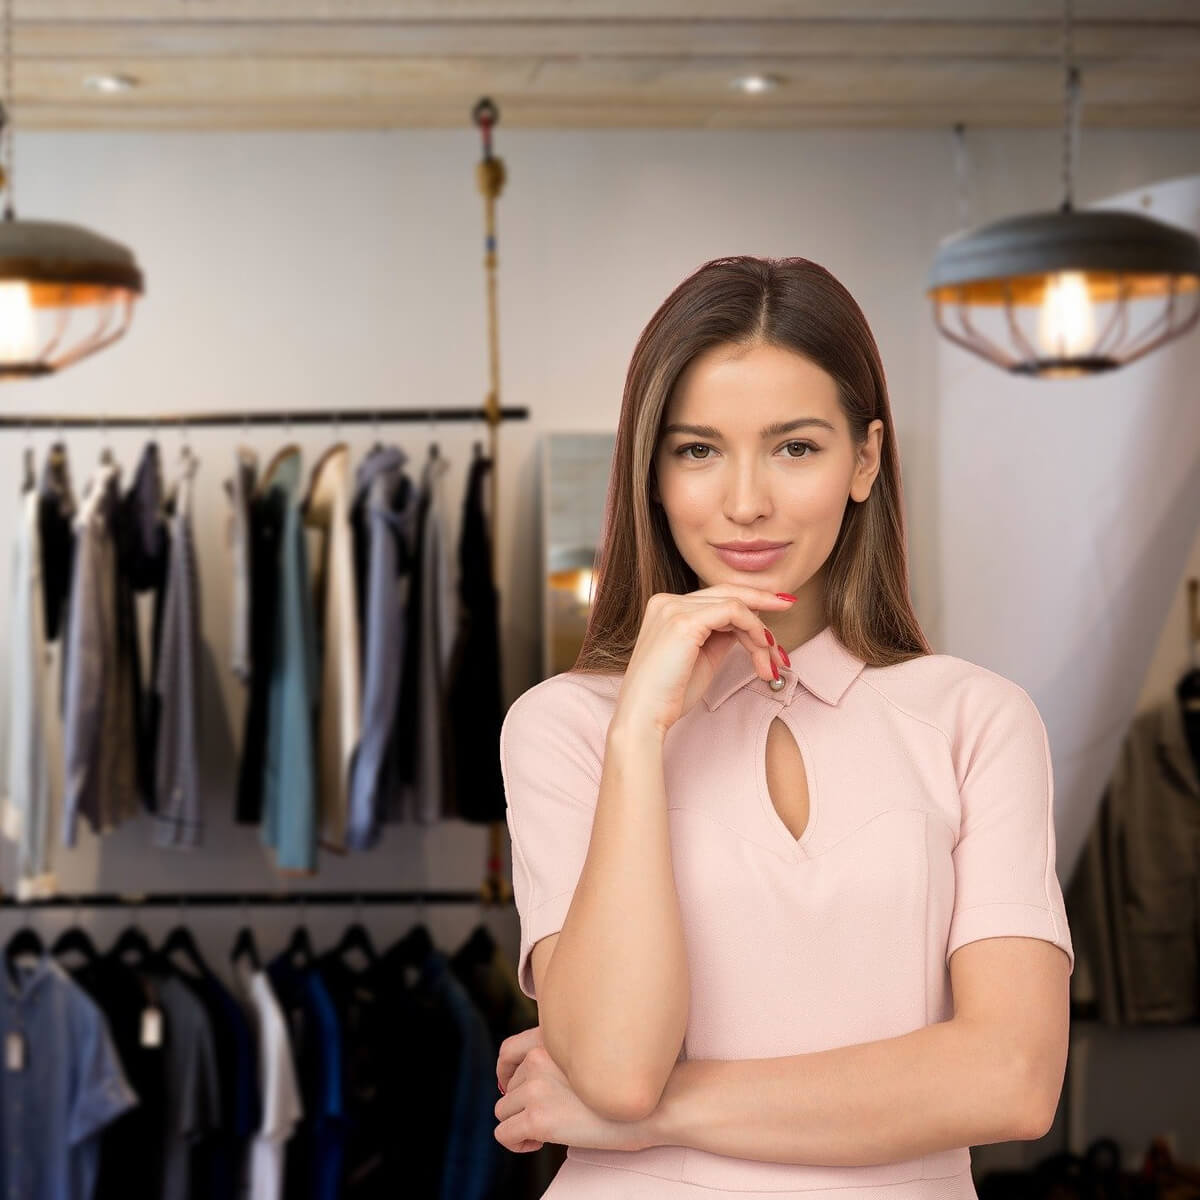 Woman in retail clothing store